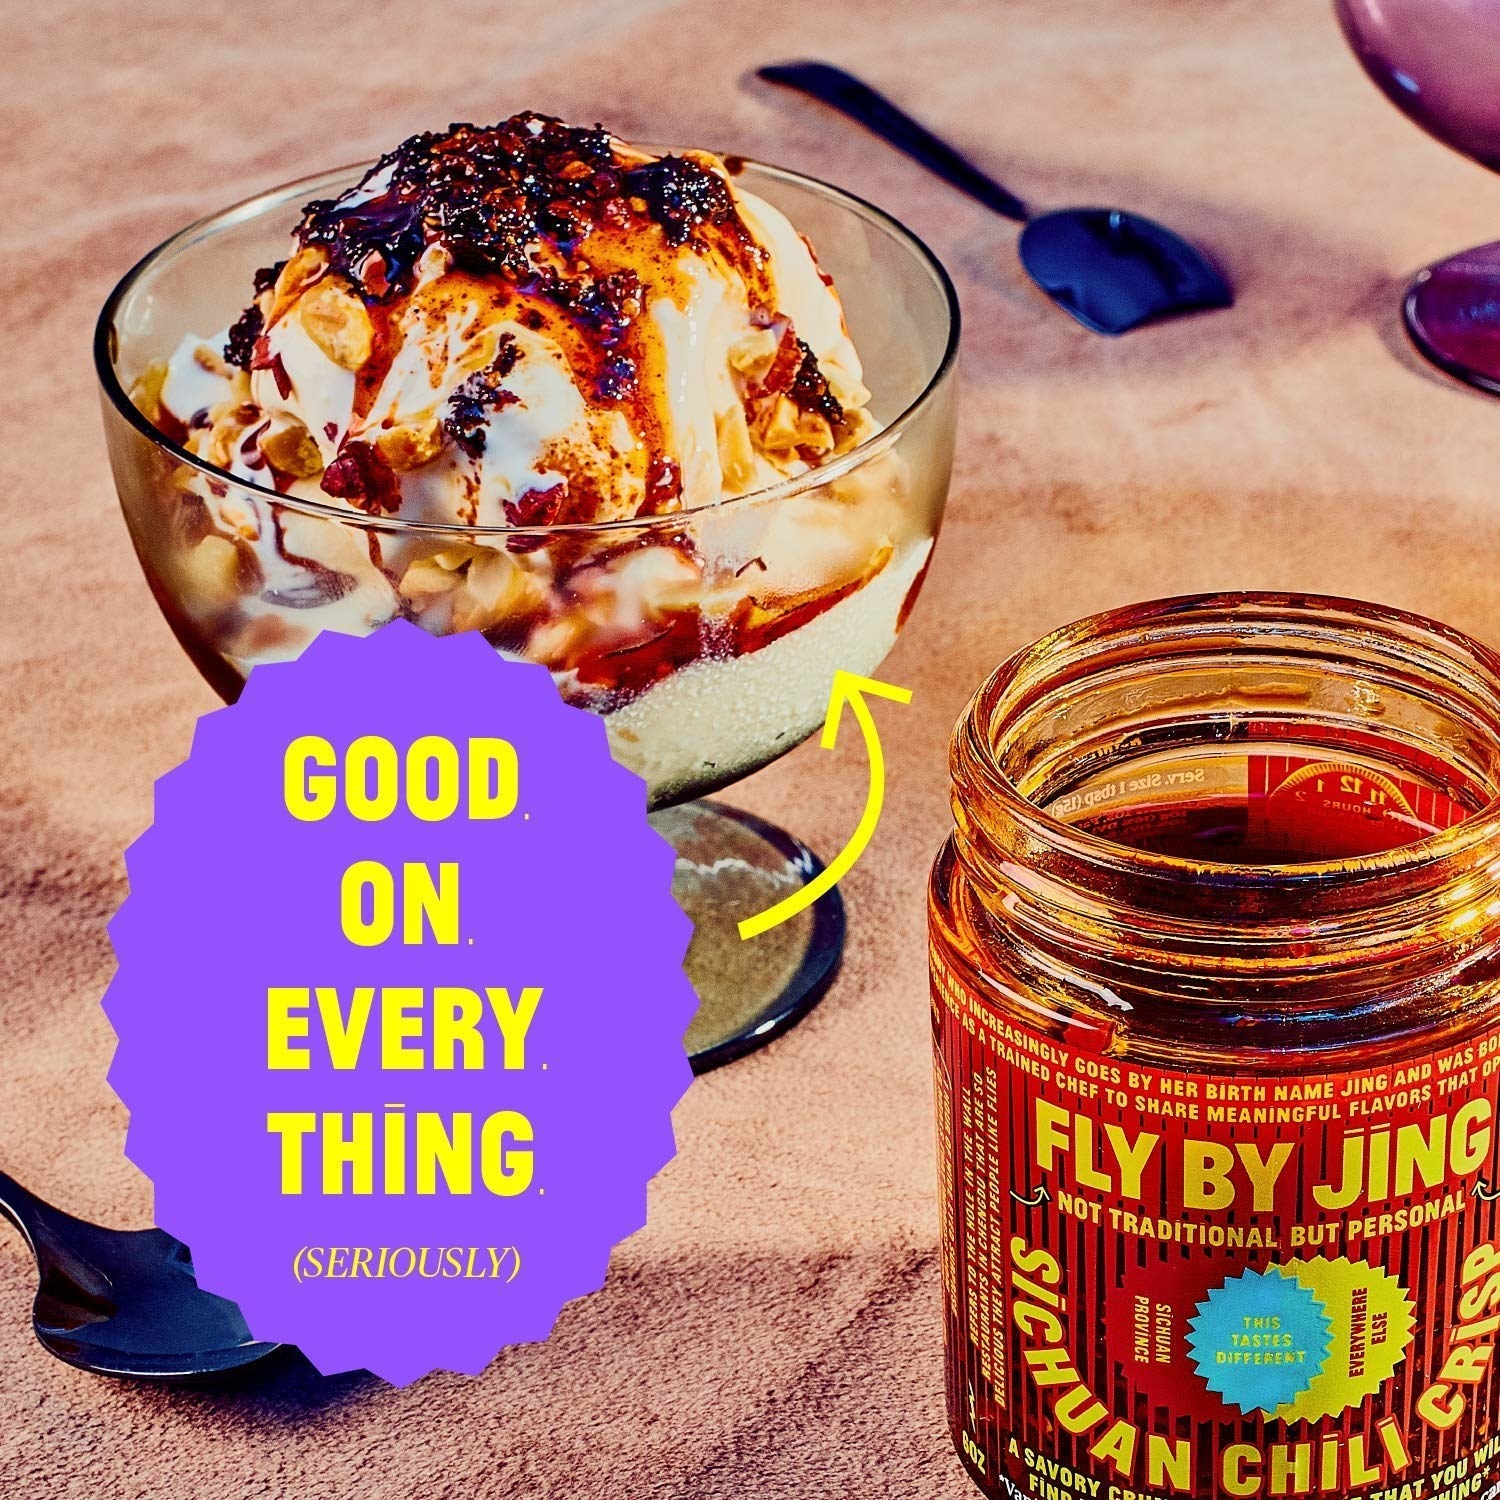 chili sauce on ice cream that says good on everything seriously